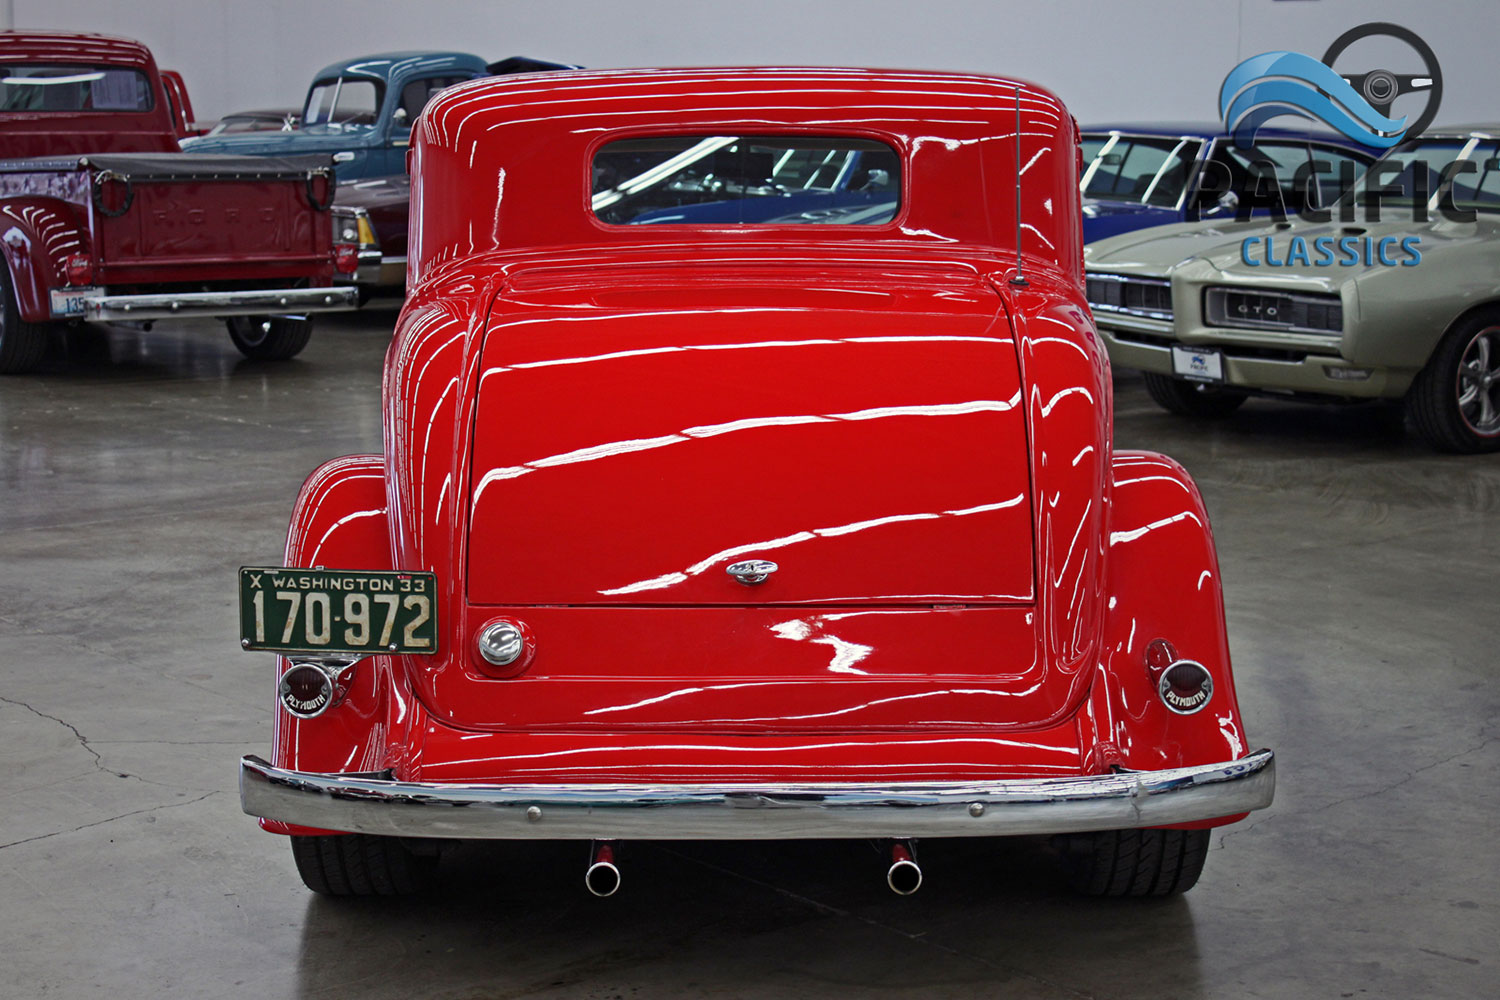 33 plymouth (10)